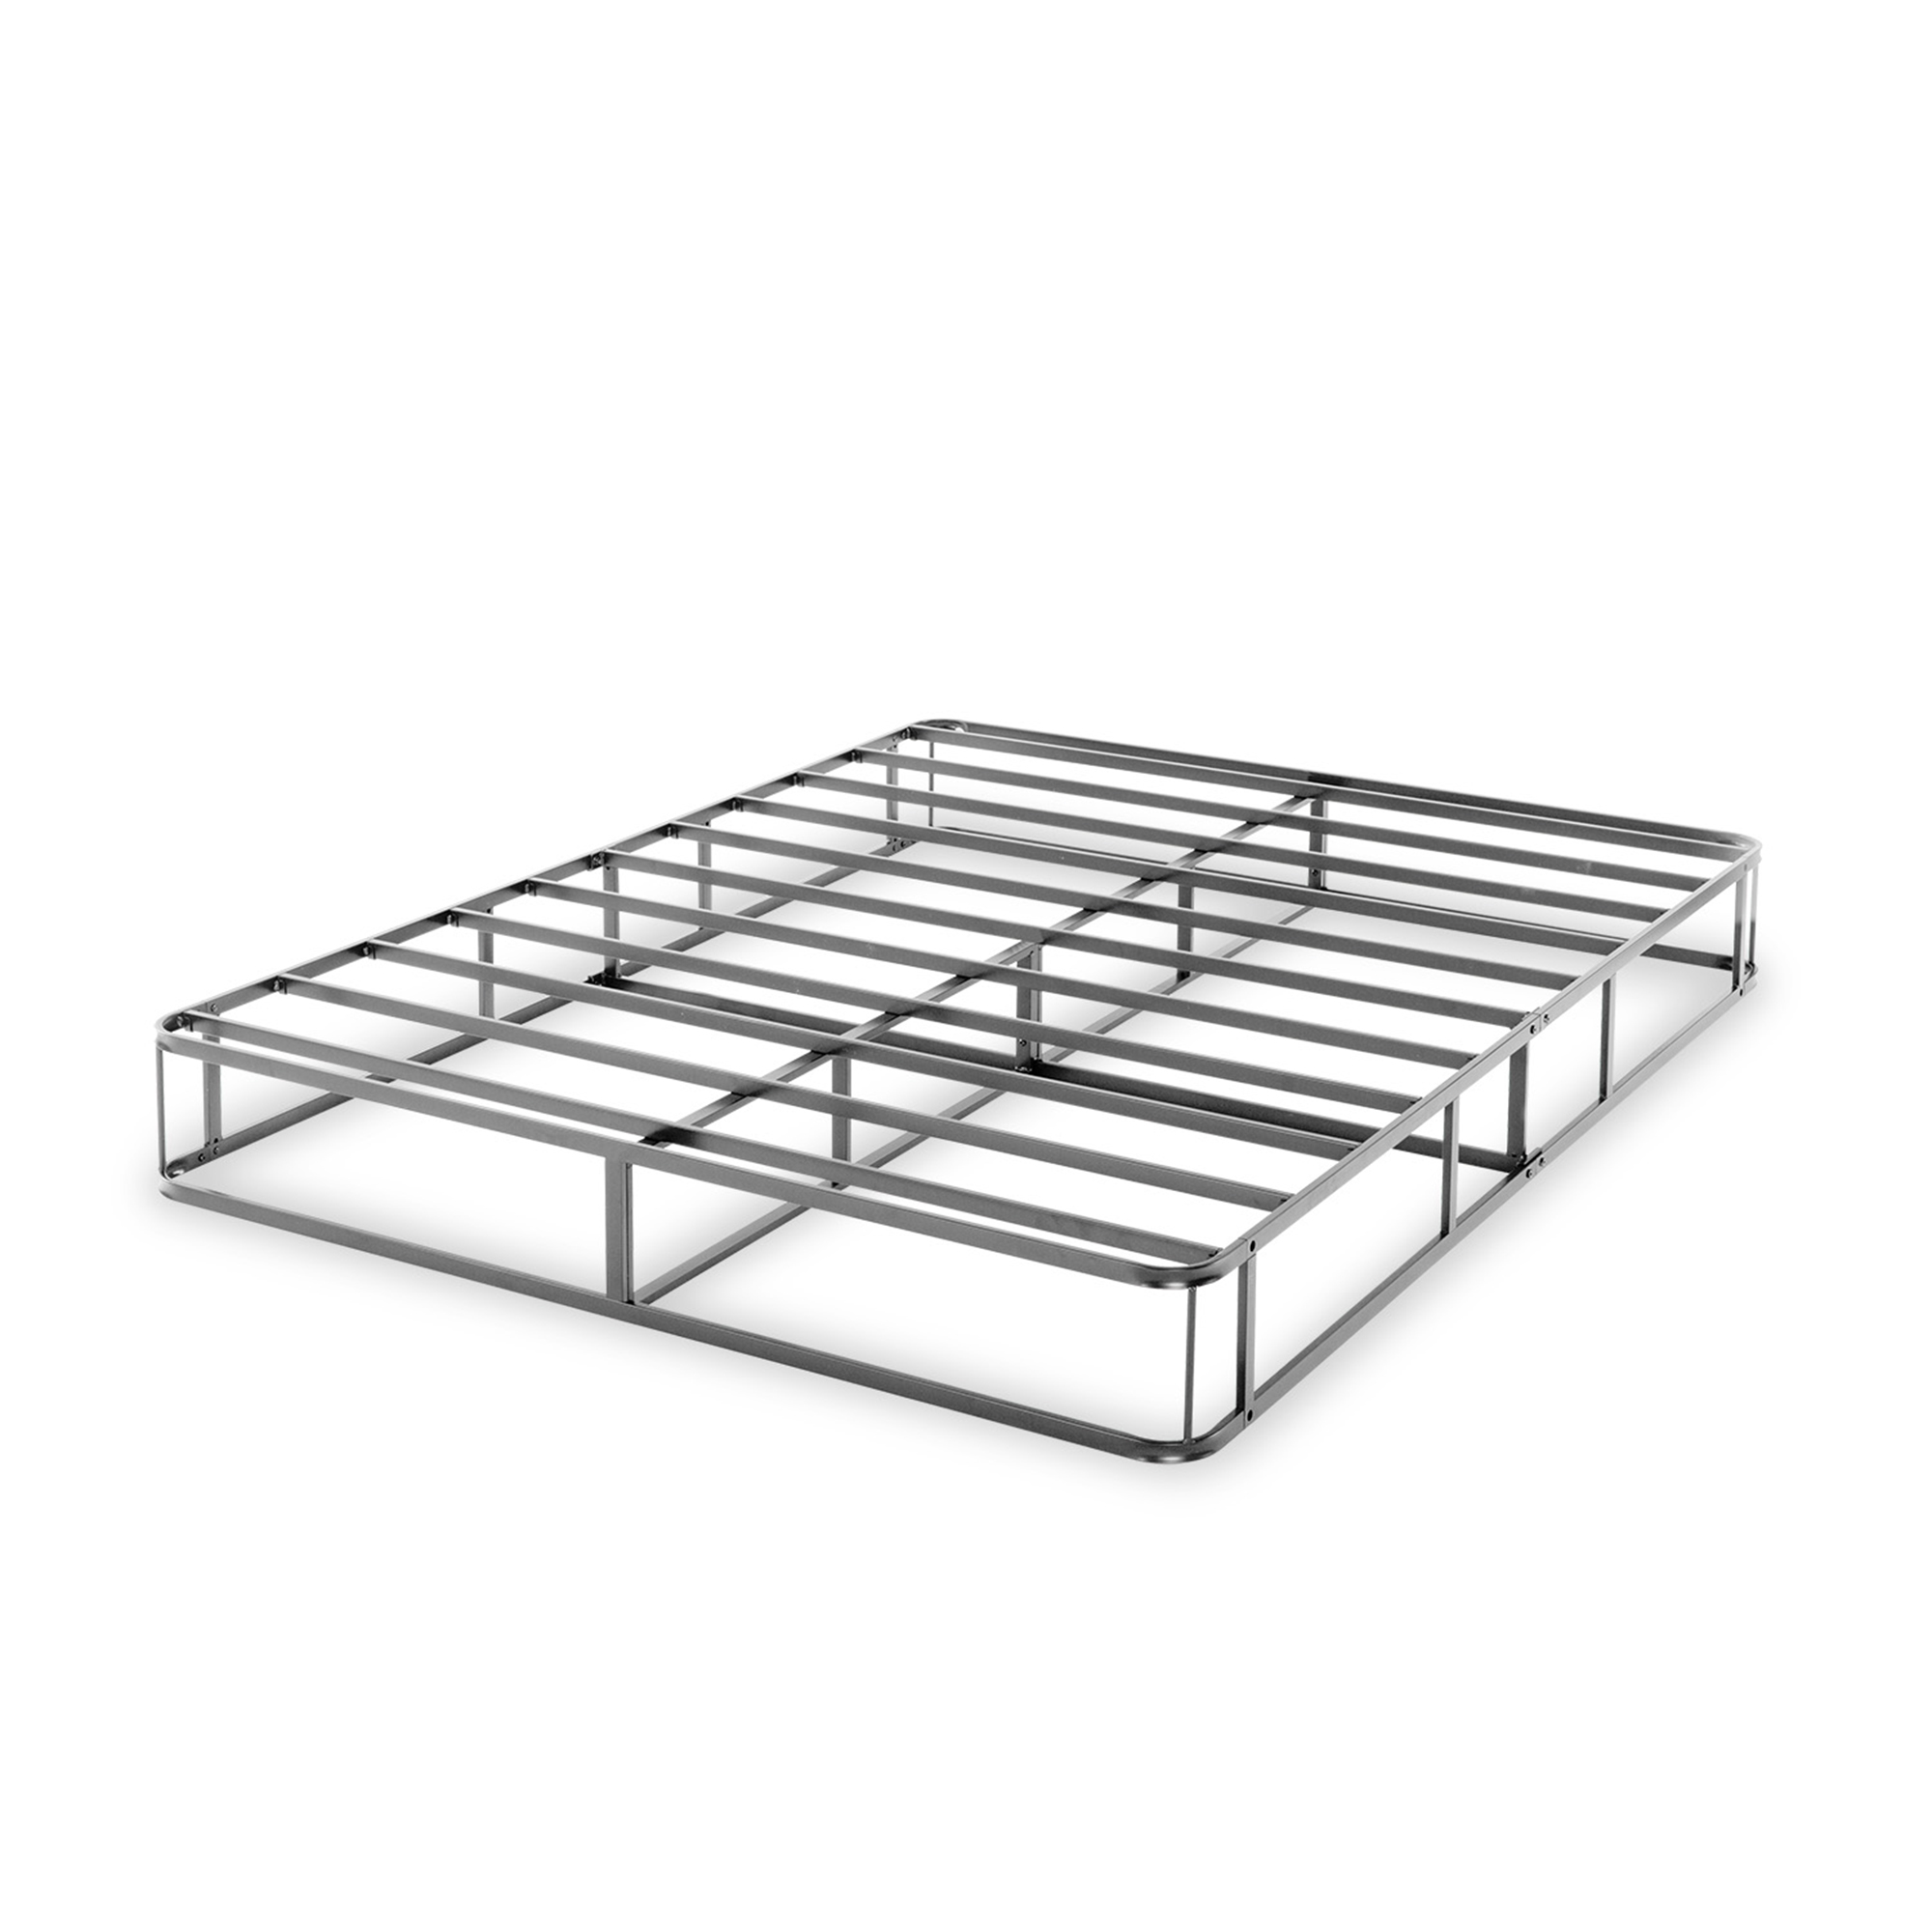 KEETSA The Base - Steel Box Spring